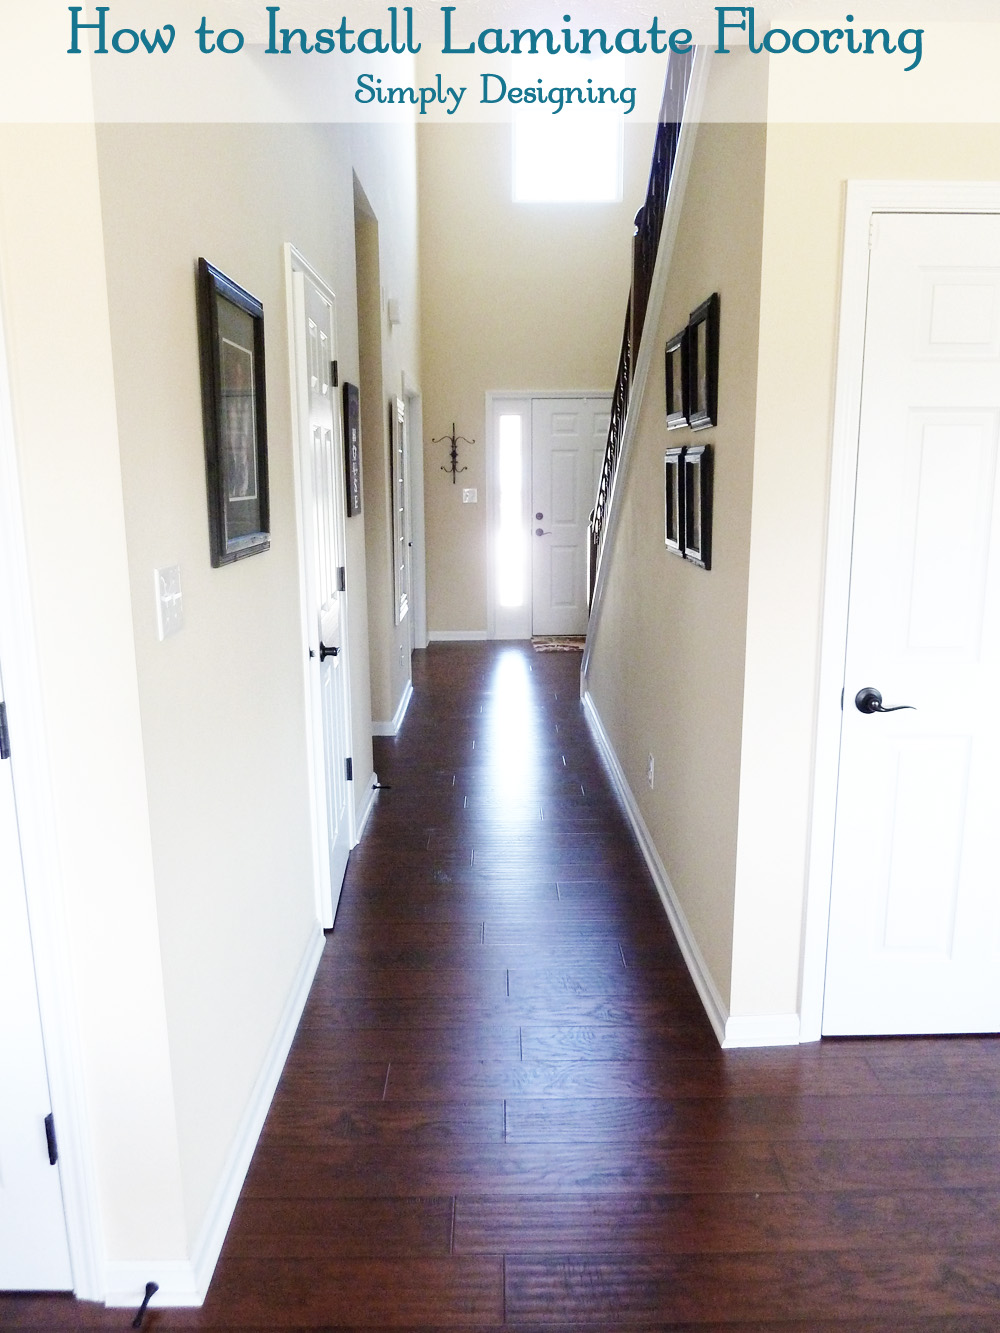 Flooring Installation Images - Reverse Search